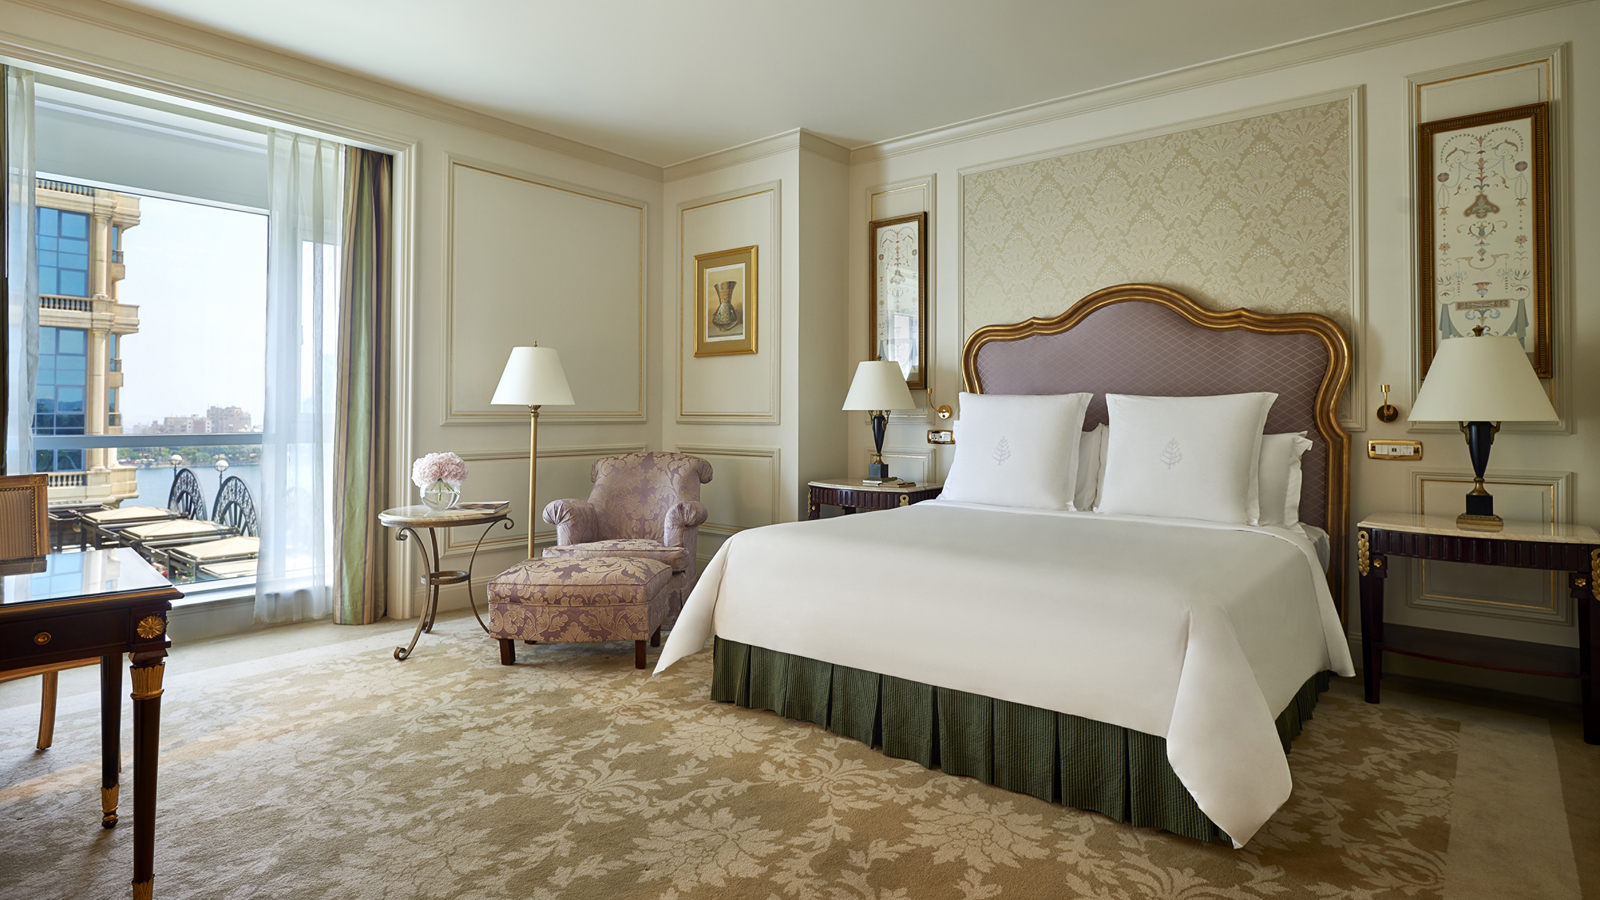 Luxury hotel offers this summer at four seasons hotels for Luxury hotel offers